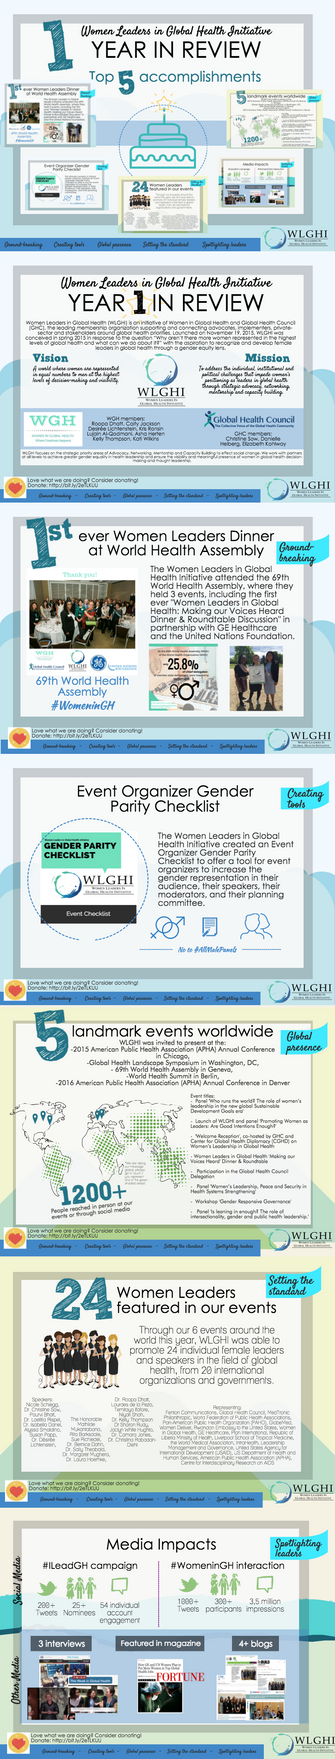 First anniversary of the Women Leaders in Global Health Initiative (WLGHI): Accomplishments and less